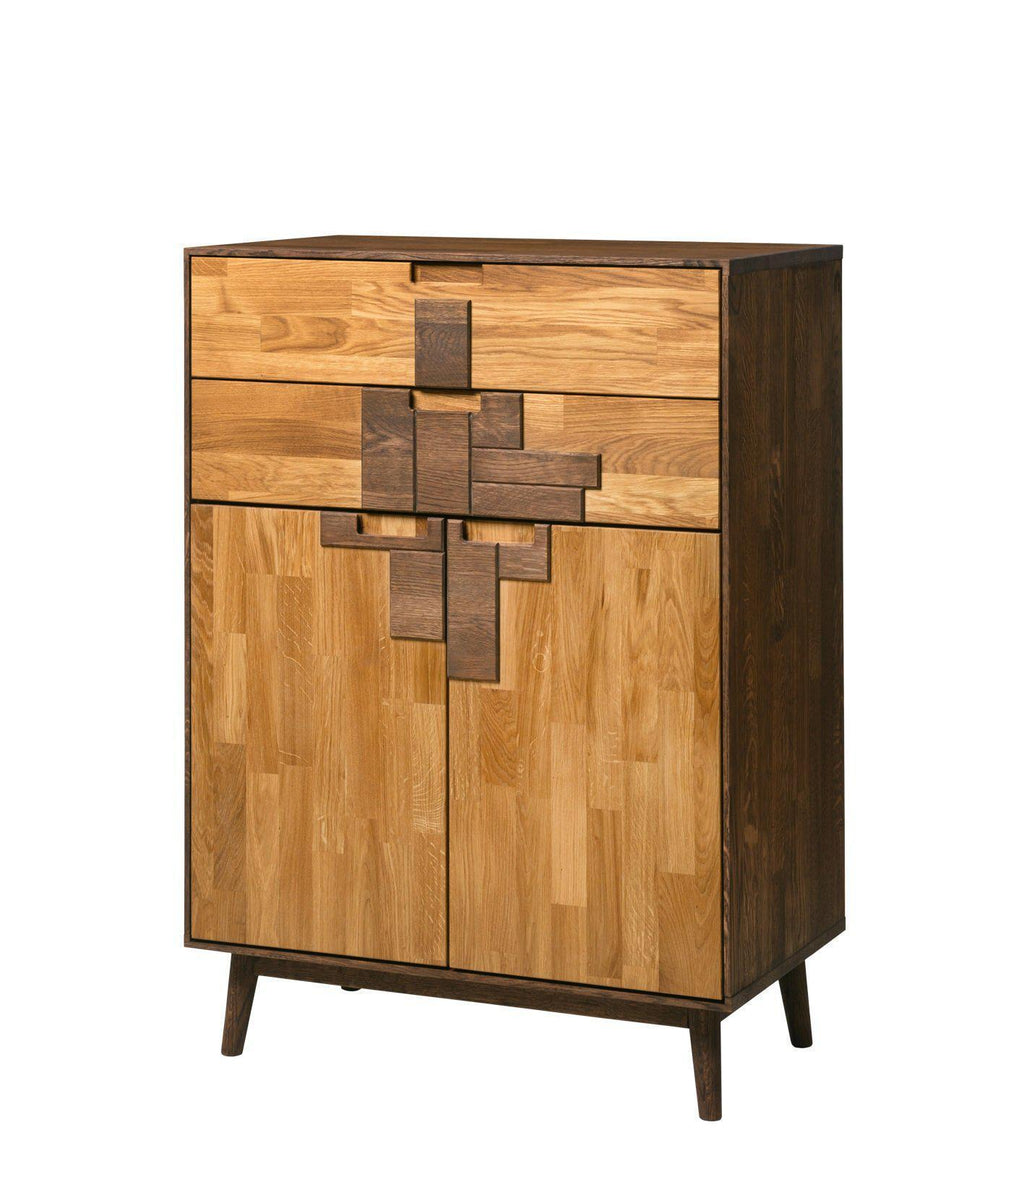 NordicStory Sinfonier Solid Oak Chest of Drawers